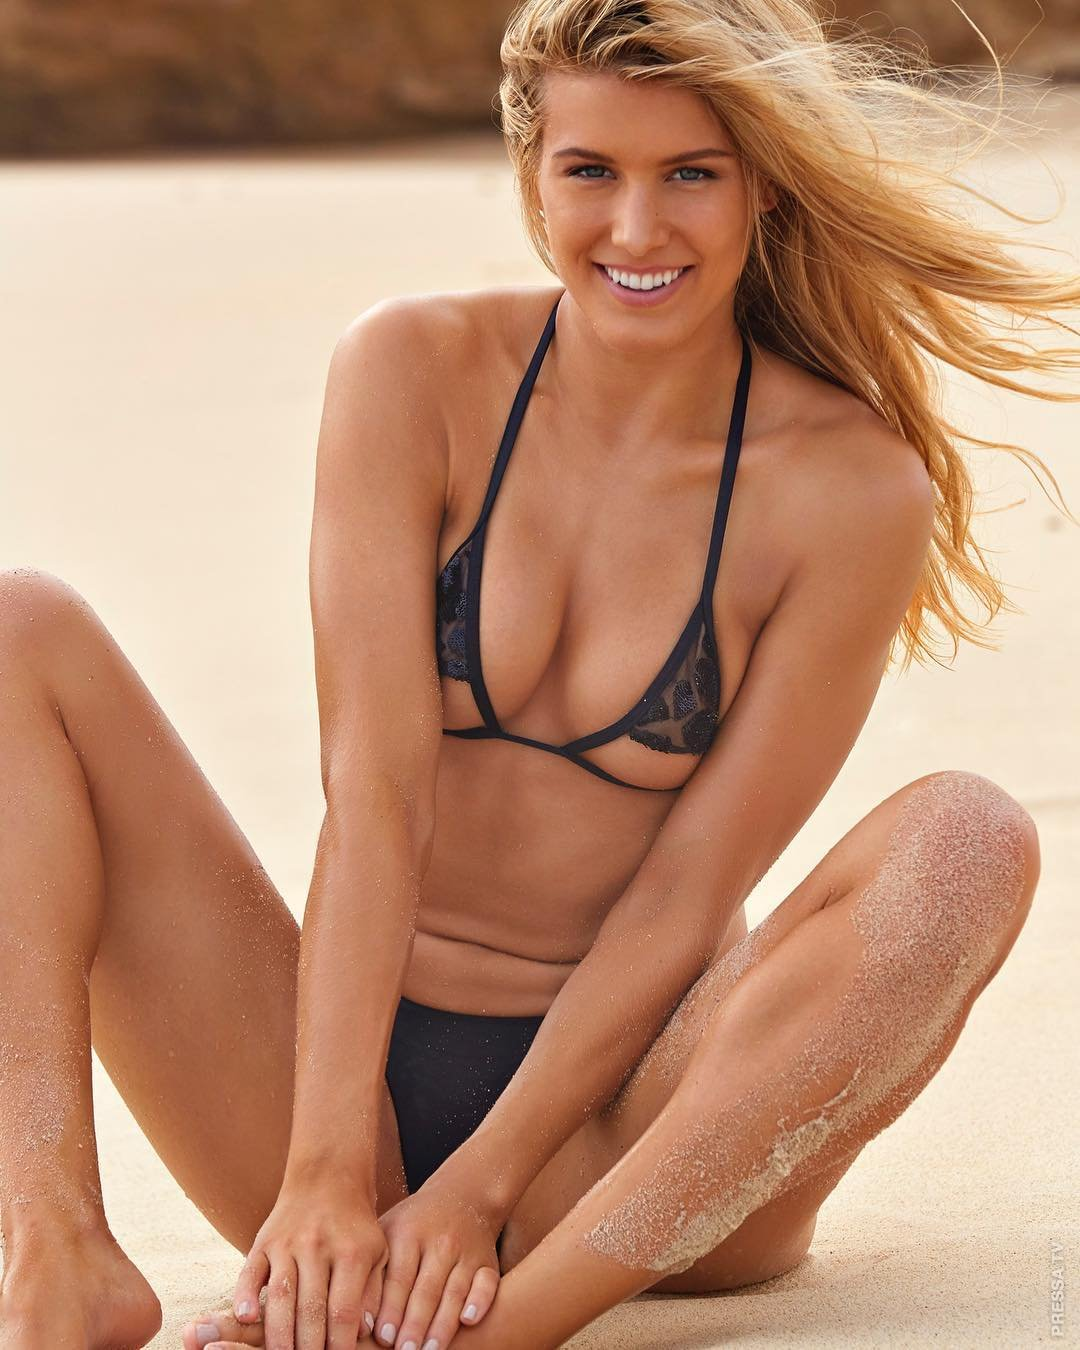 Genie bouchard nude pics, moving images naked men having sex